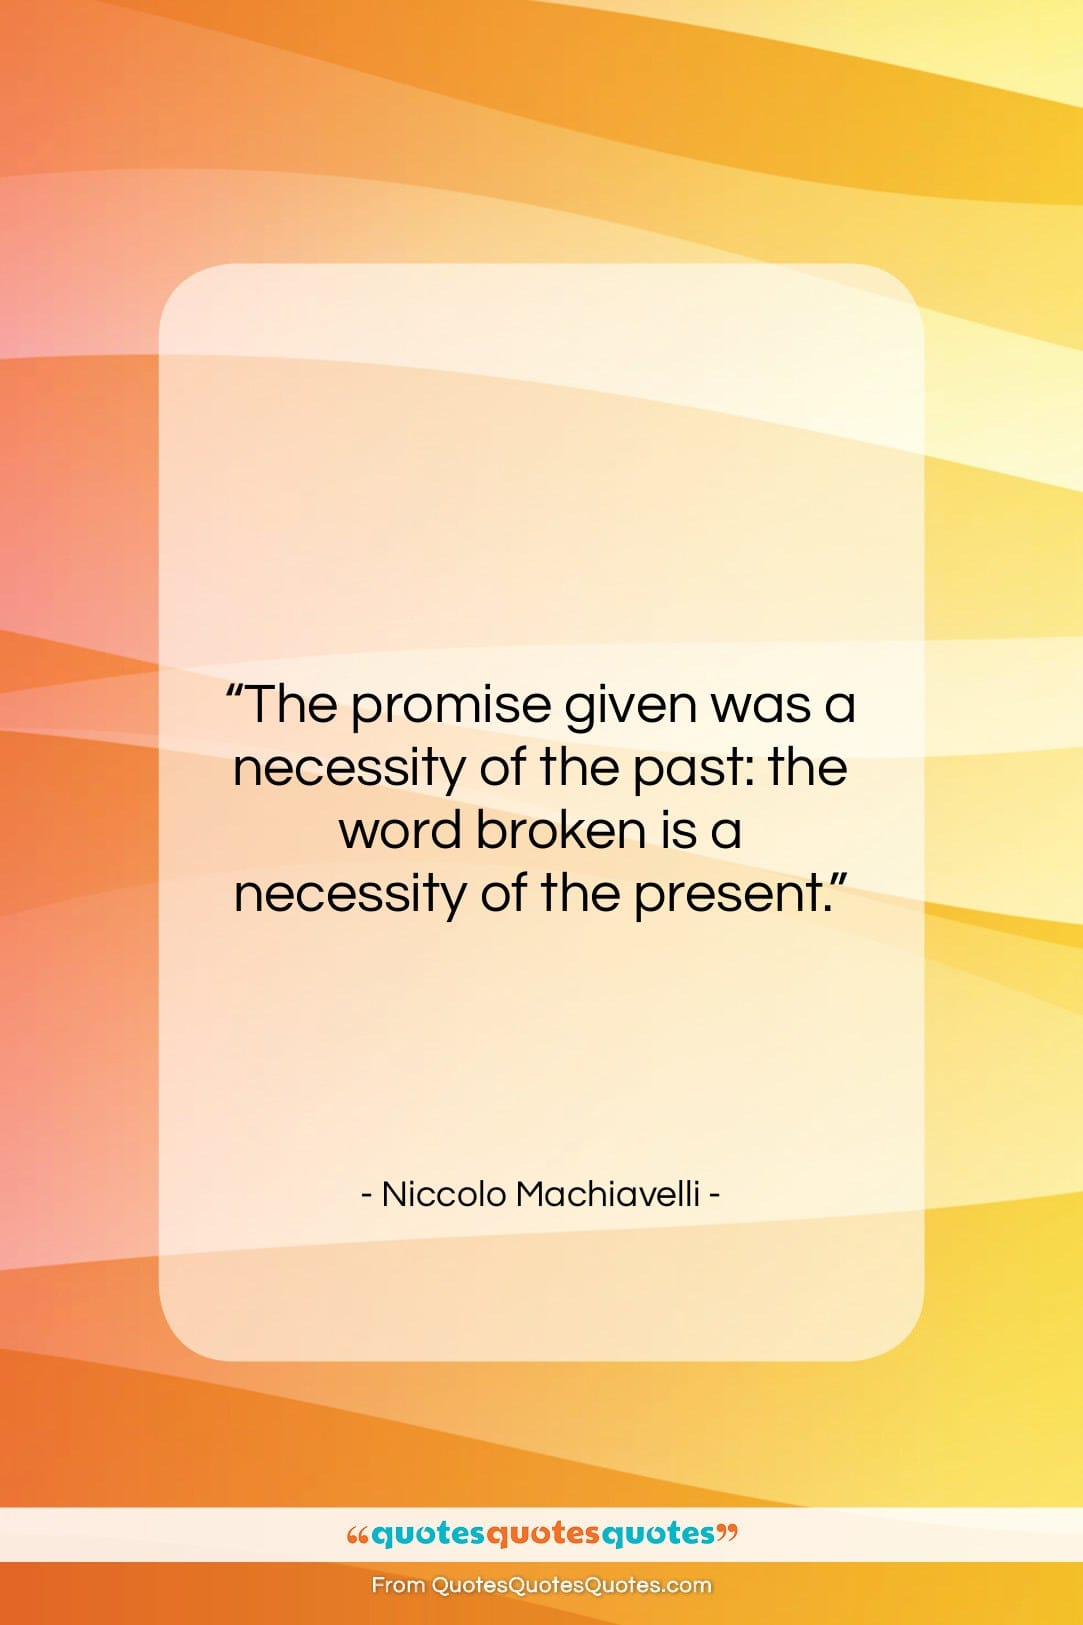 """Niccolo Machiavelli quote: """"The promise given was a necessity of…""""- at QuotesQuotesQuotes.com"""